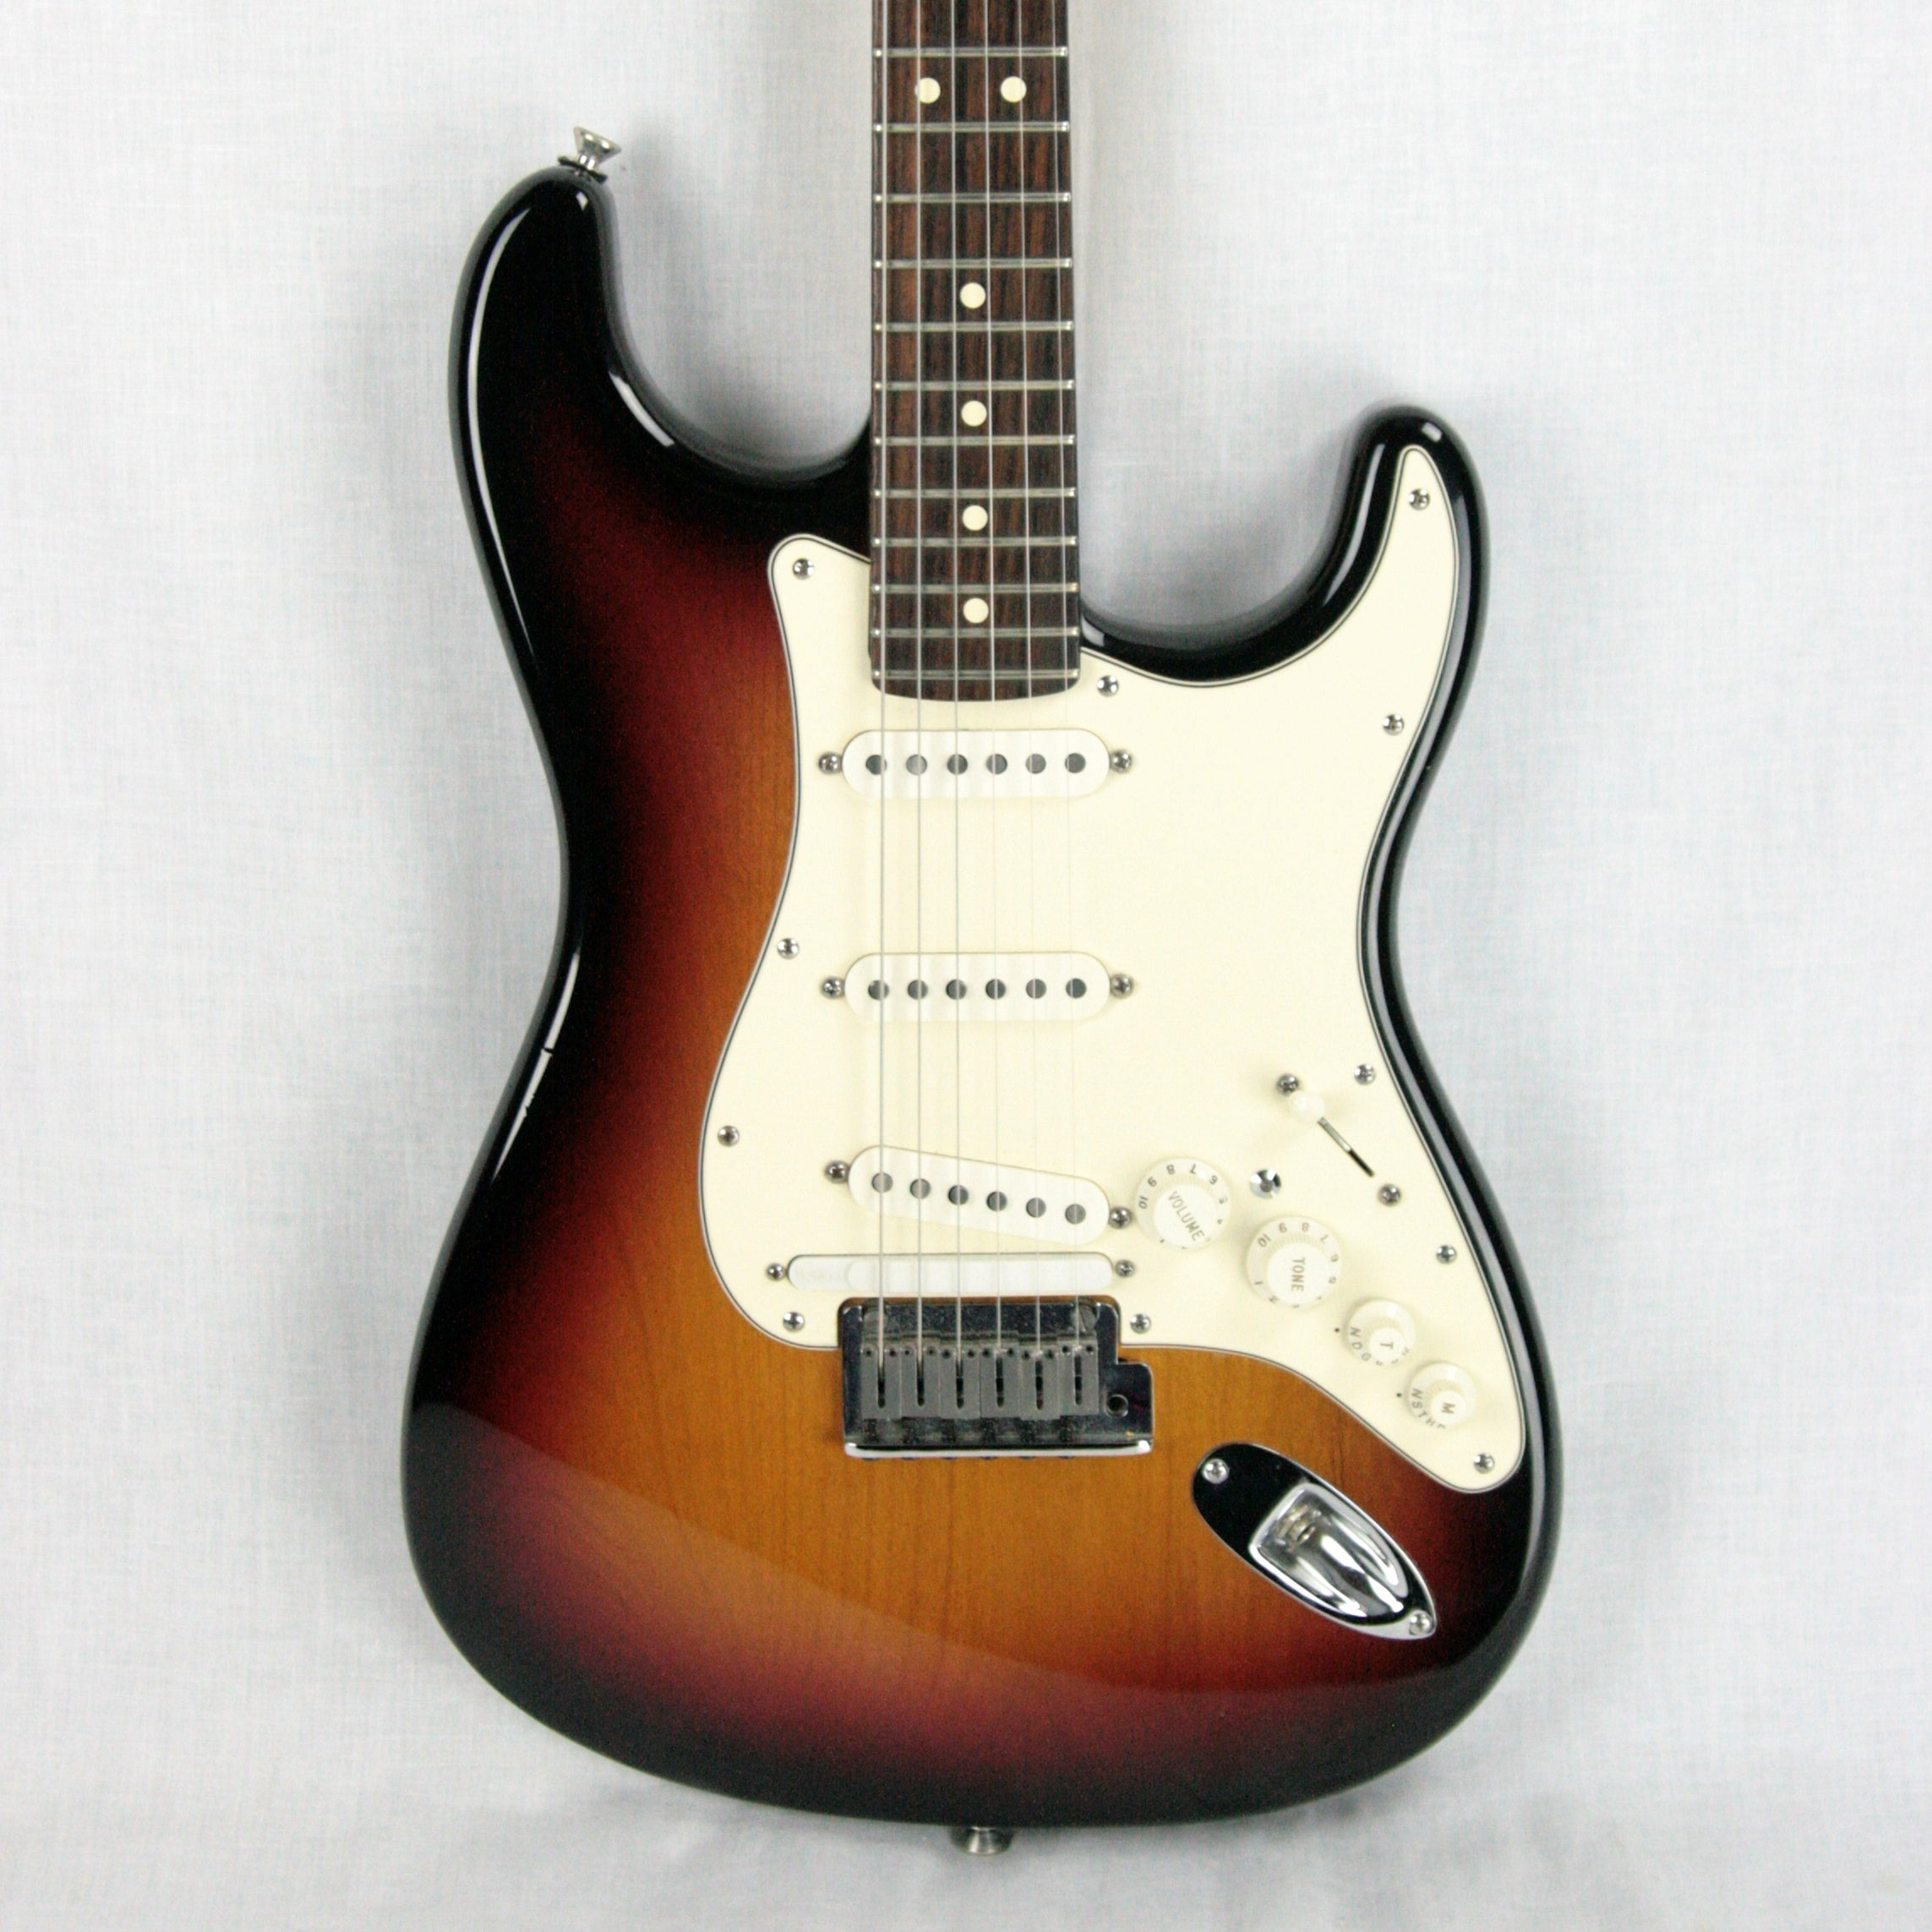 2006 Fender American VG Stratocaster Virtual Guitar Strat! USA Sunburst Rosewood Neck